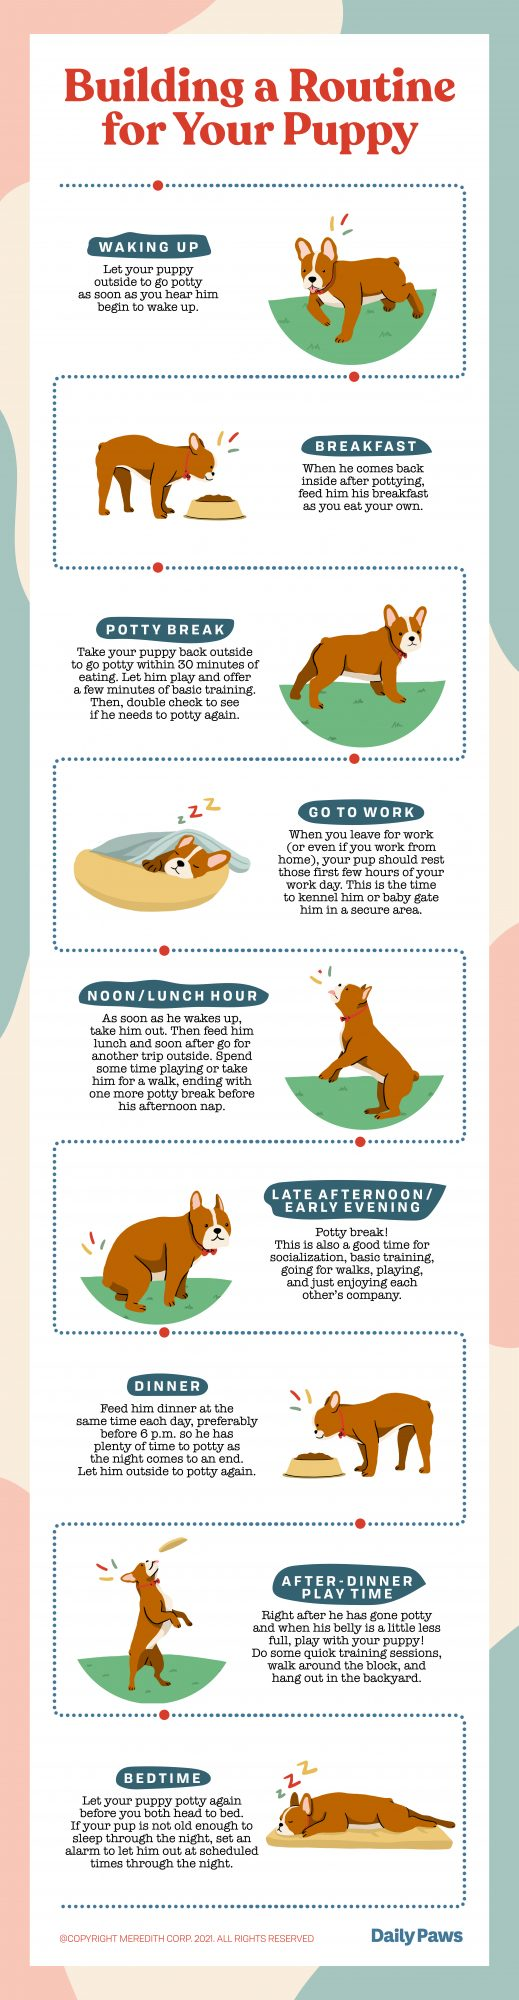 Illustrated infographic about a puppy's daily schedule